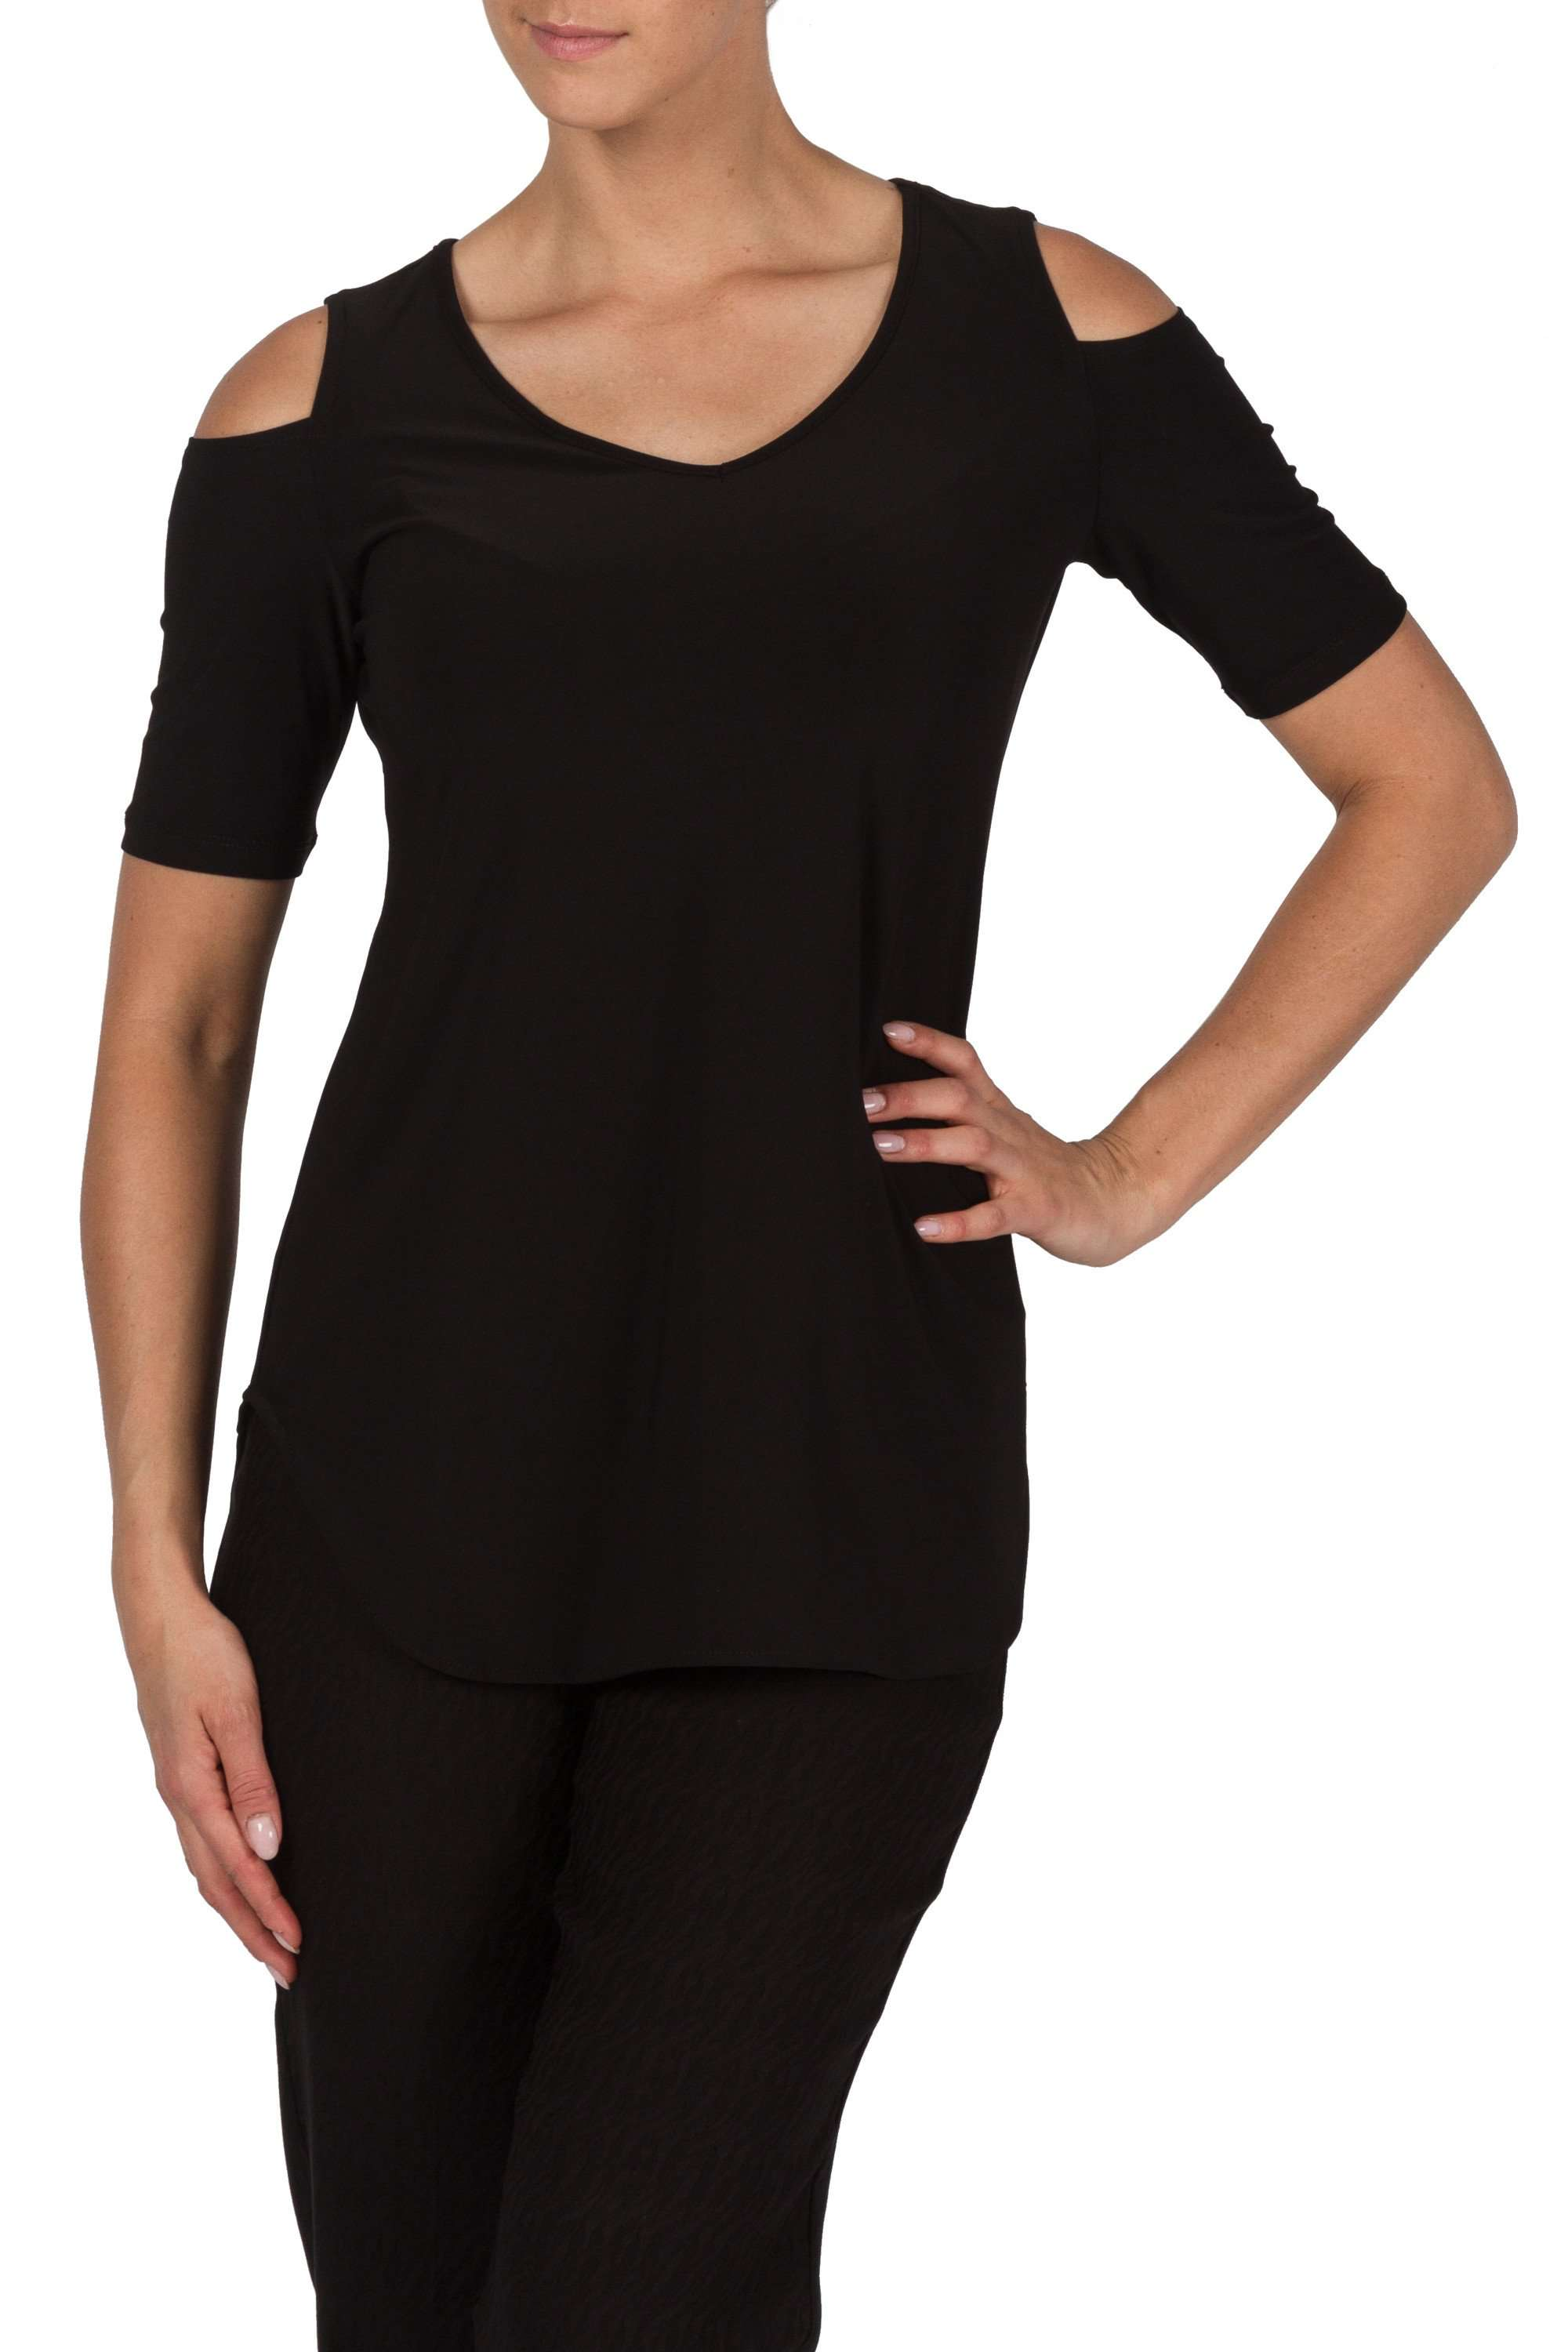 Black Cold Shoulder Tunic Top - Yvonne Marie